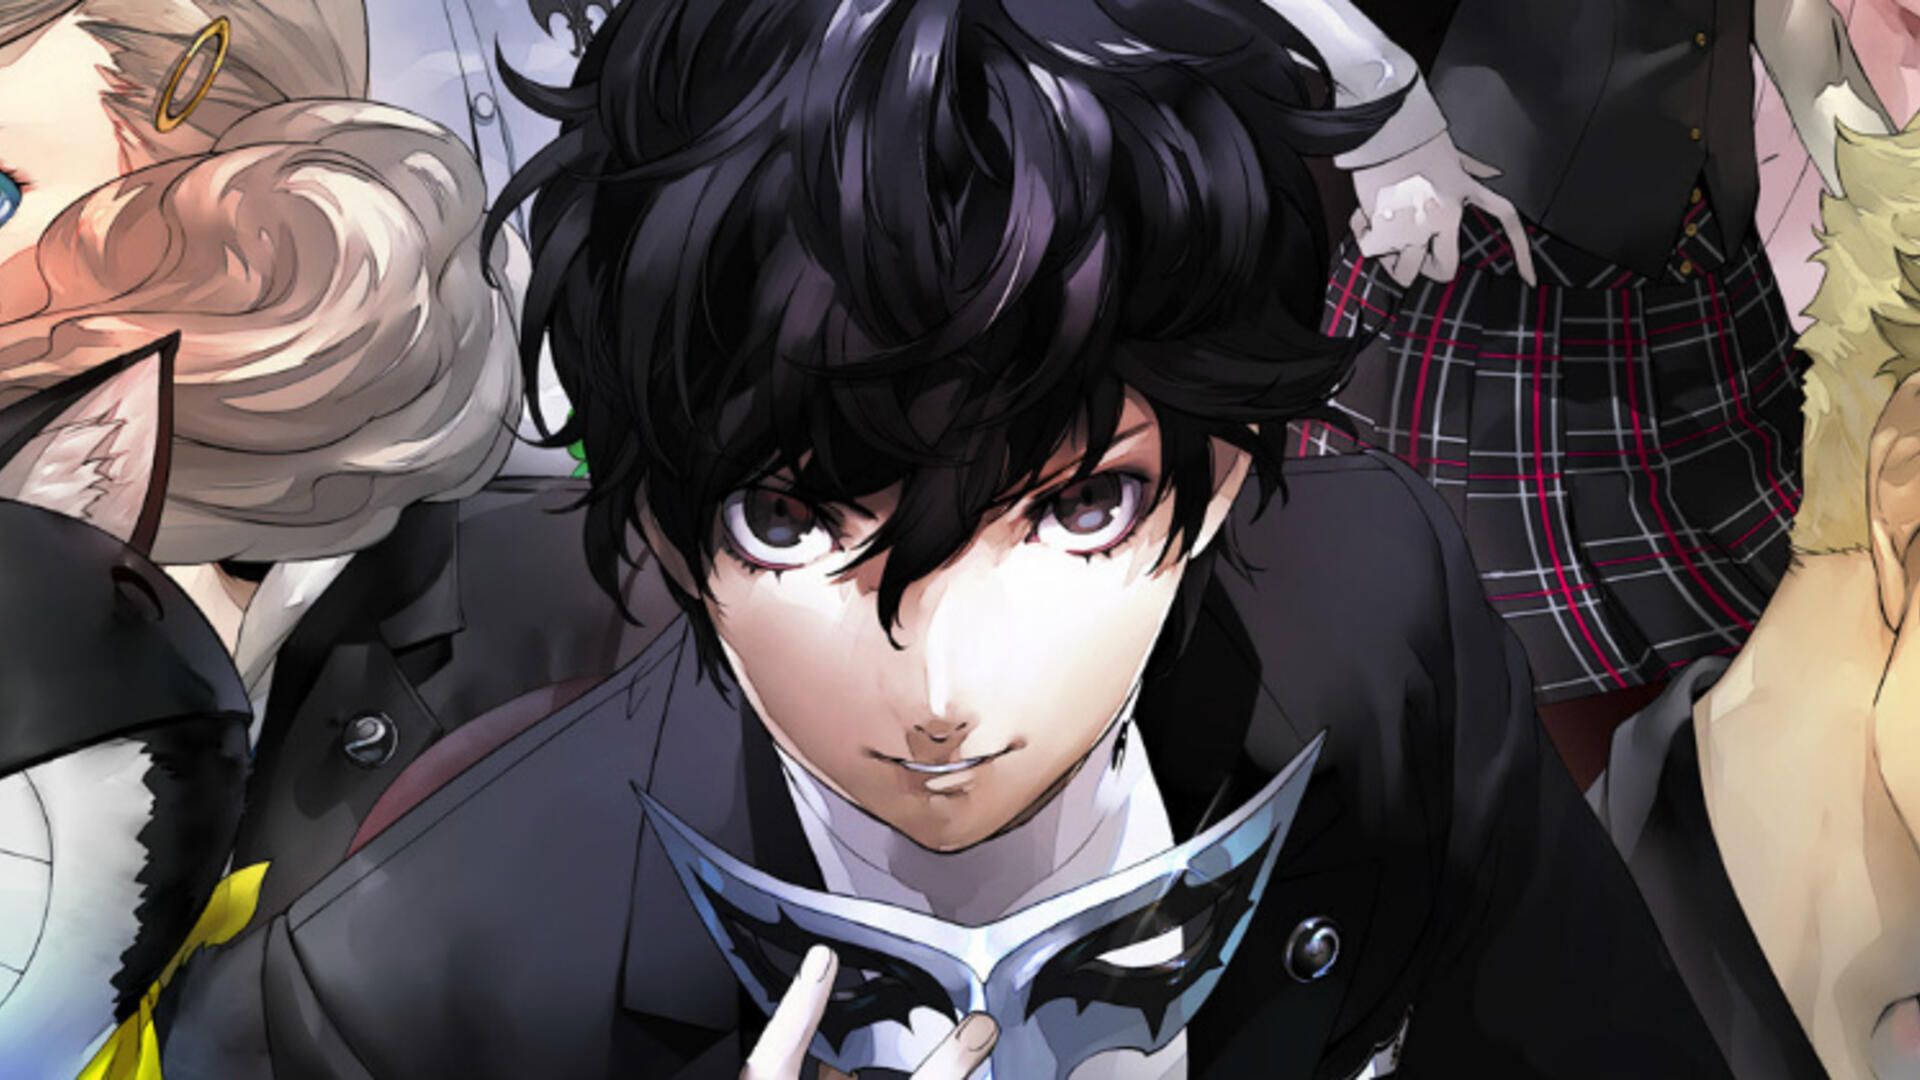 Persona 5 English Voice Cast Detailed